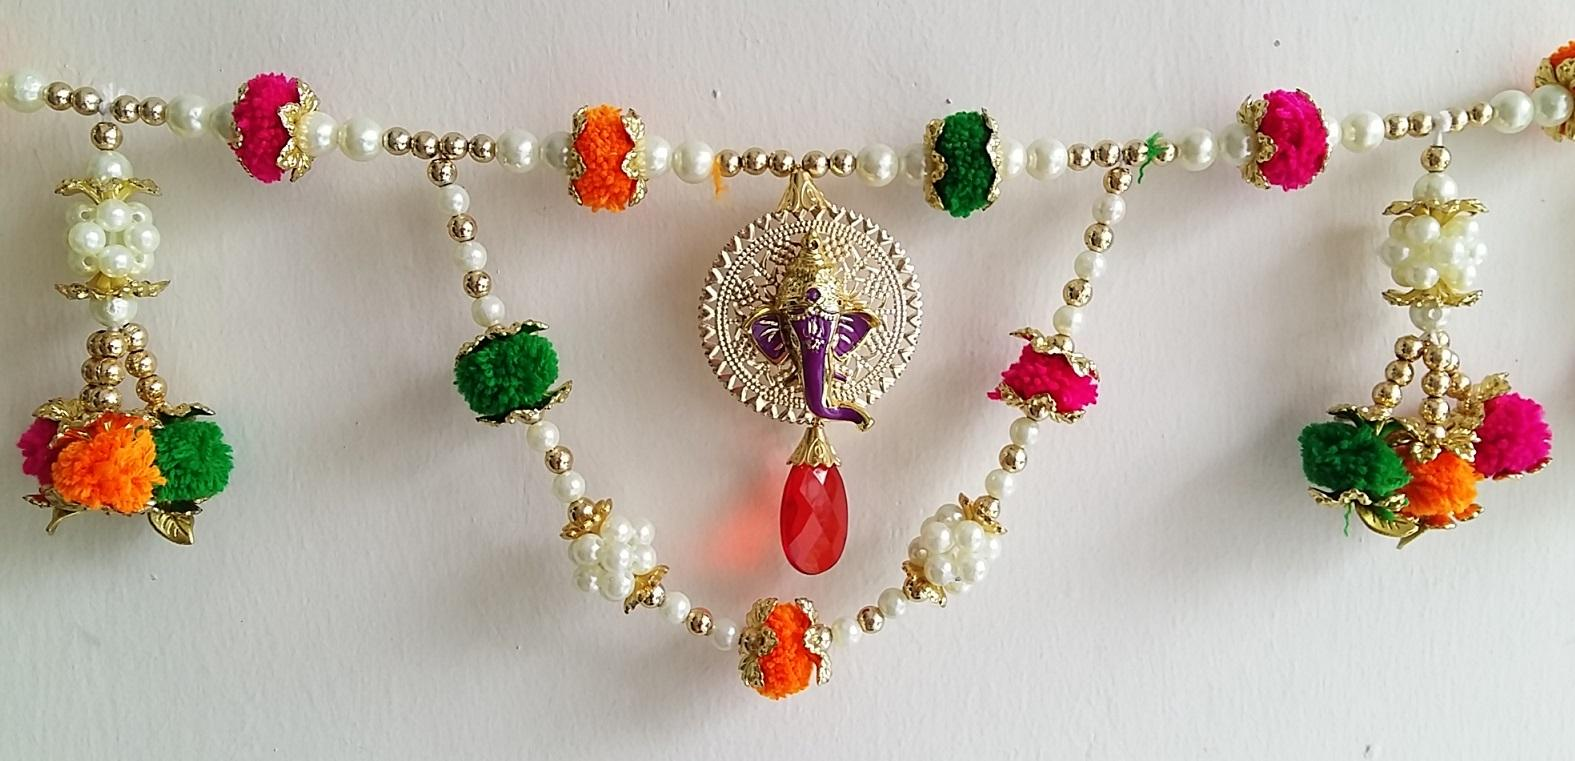 Door Hanging Toran Indian Decorative Hanging With Moti Gonda, Cream Golden Pearls Ganesha